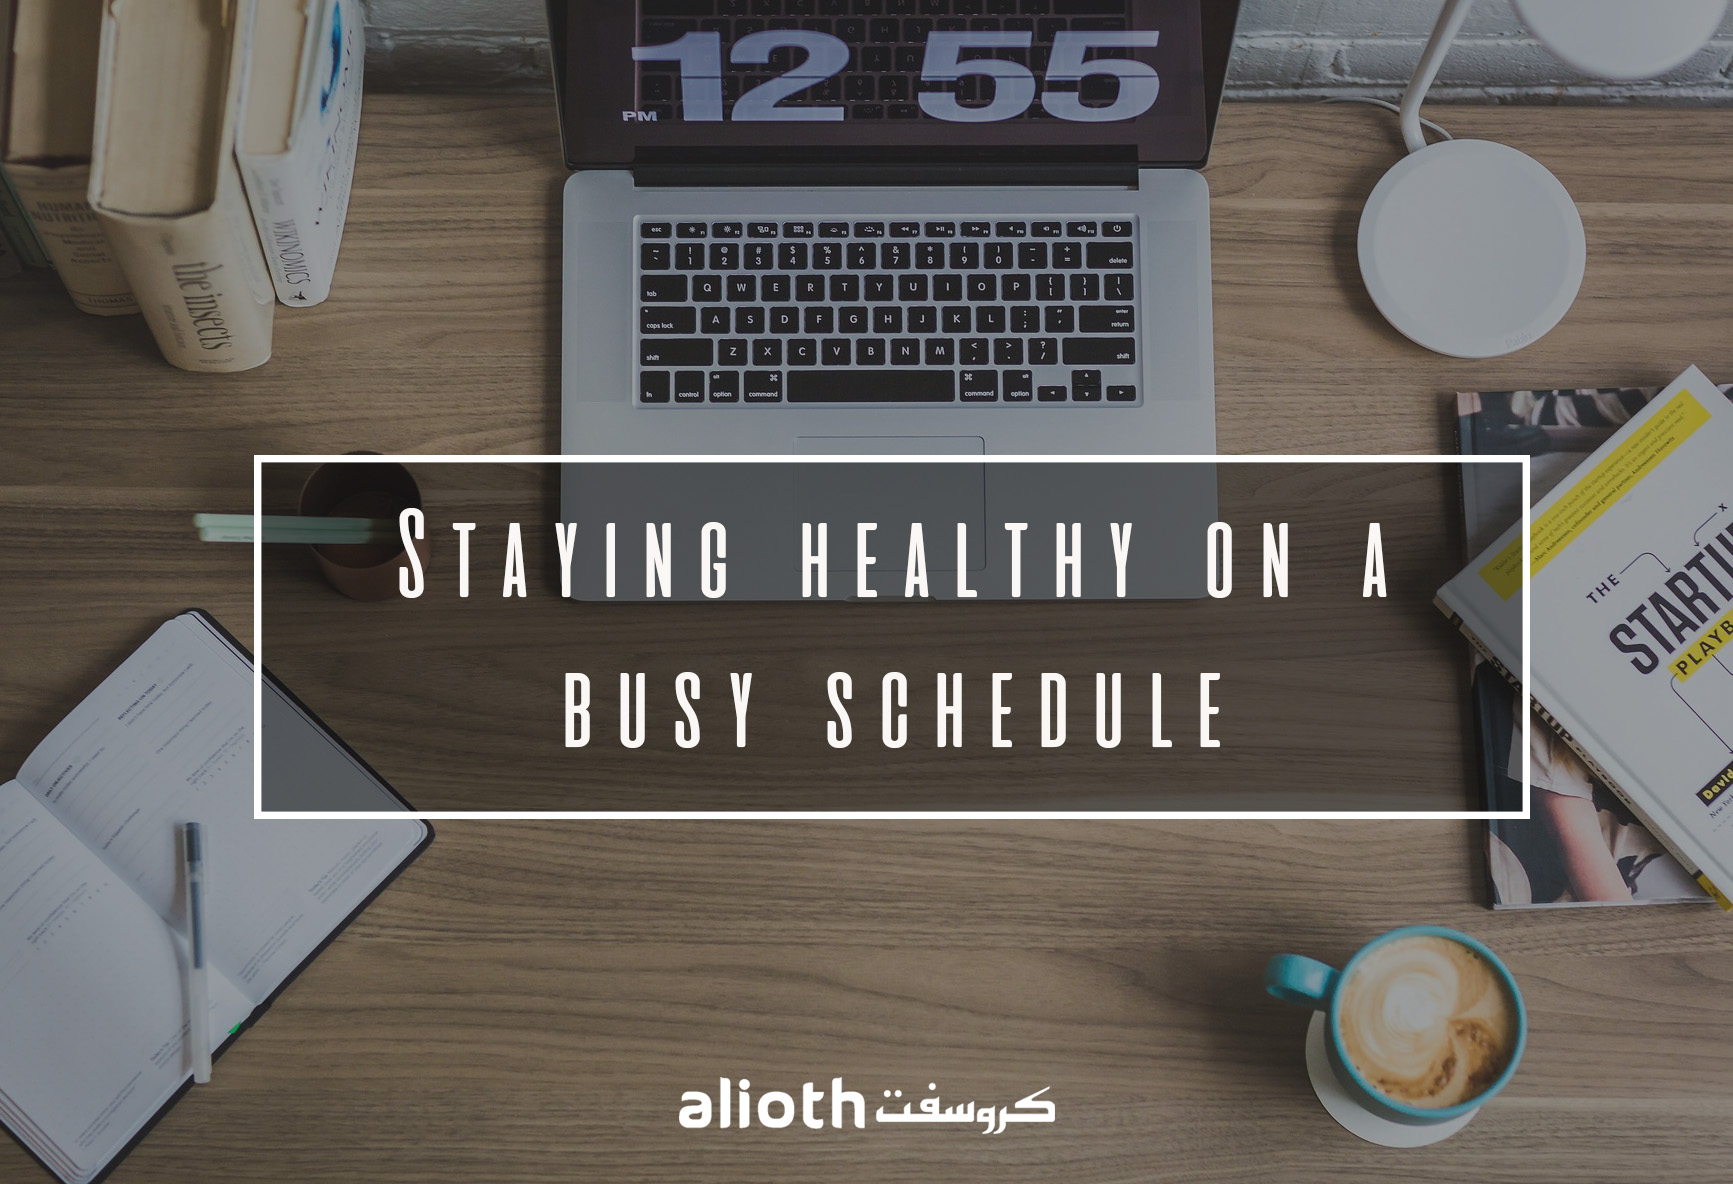 busy_schedule_mikko-blog.jpg